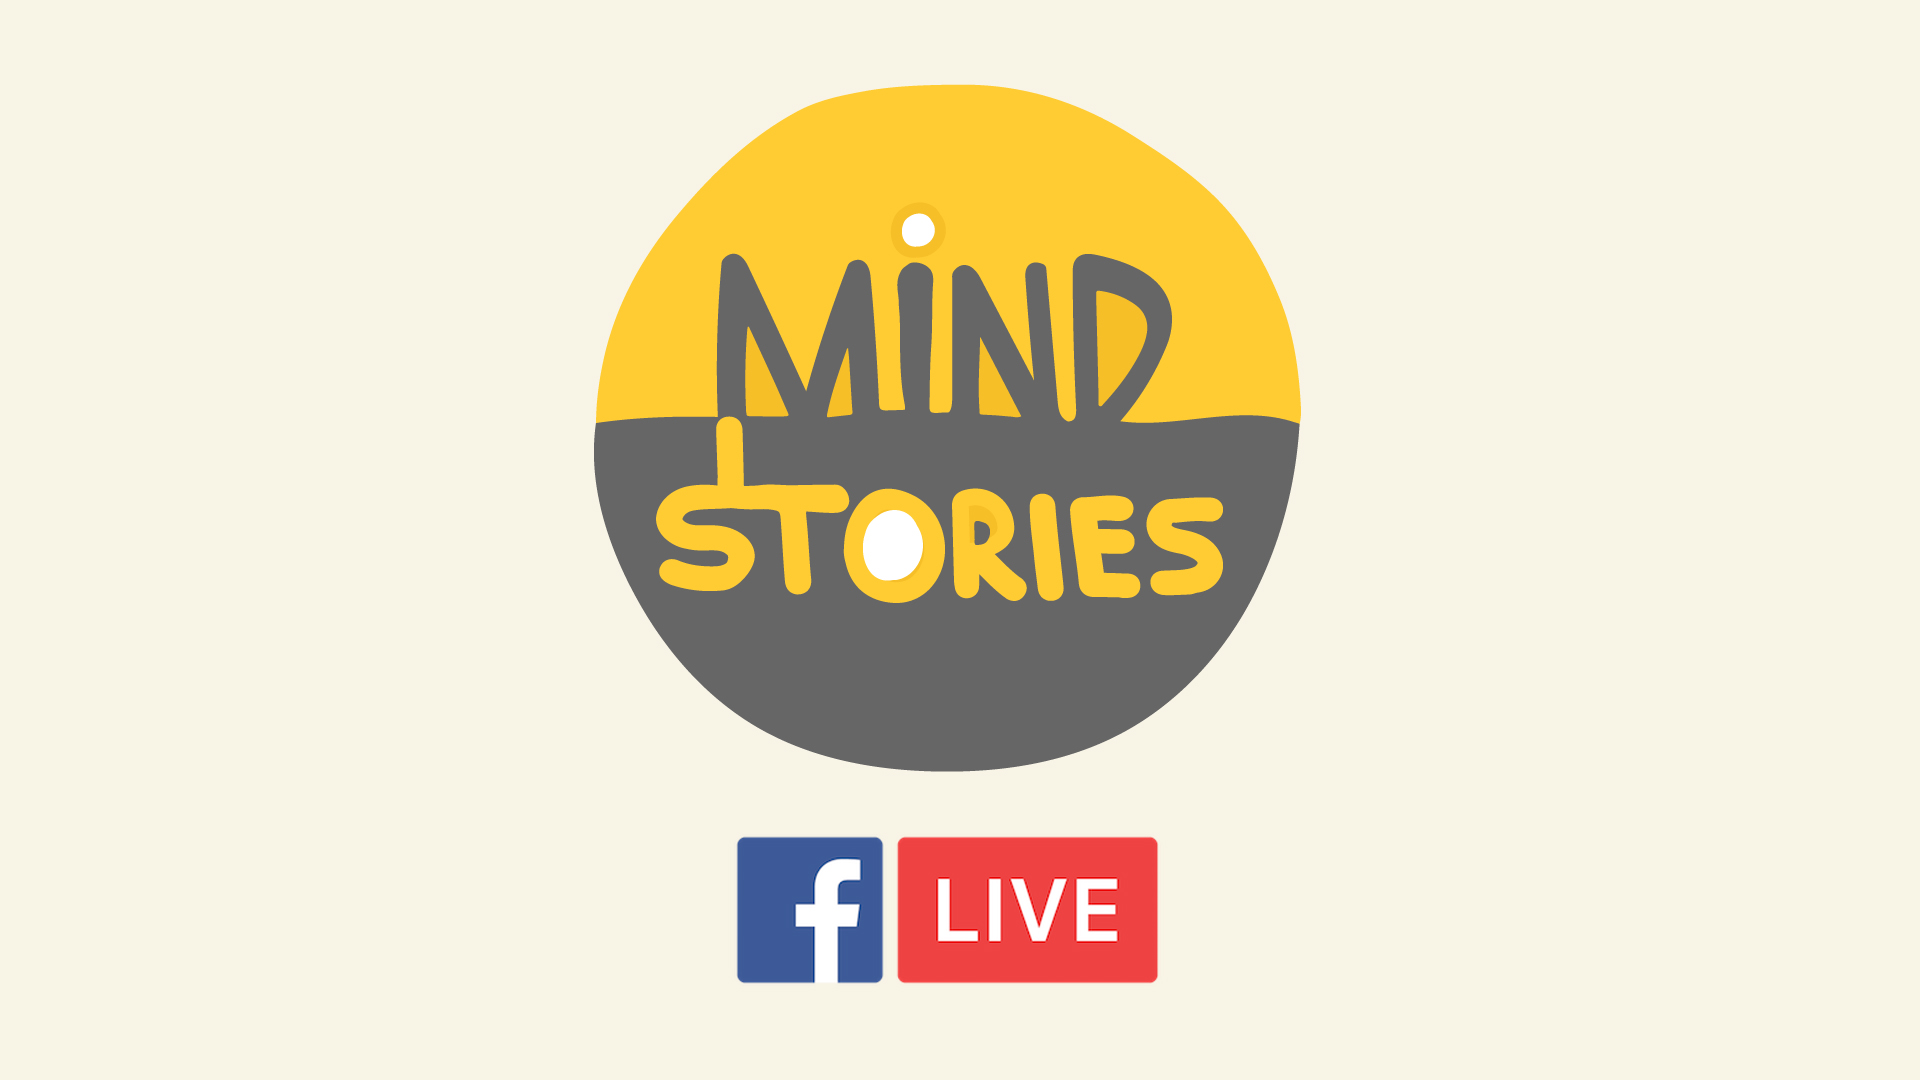 Introducing the mind stories channel